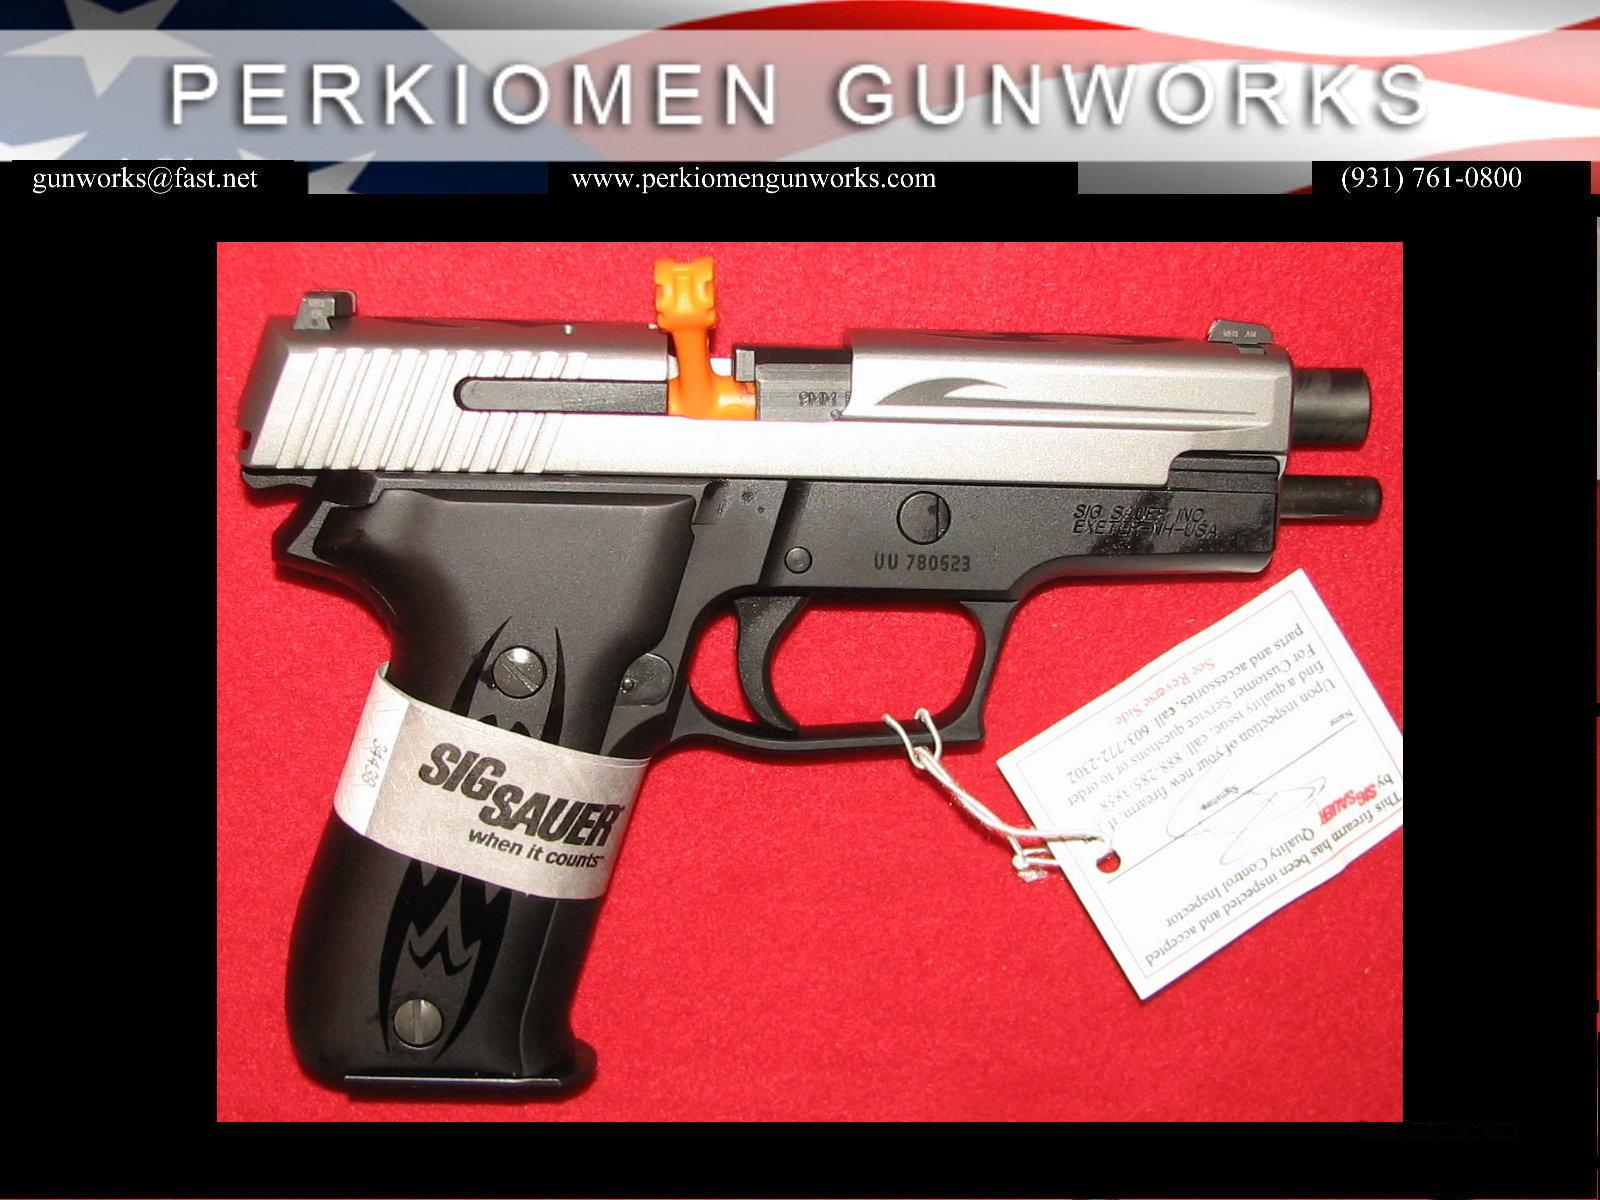 226 Tribal, Two-Tone, 9mm,w/ Night Sights, NIB - E26-9-TSS-Tribal / *SPECIAL SALE*  Guns > Pistols > Sig - Sauer/Sigarms Pistols > P226